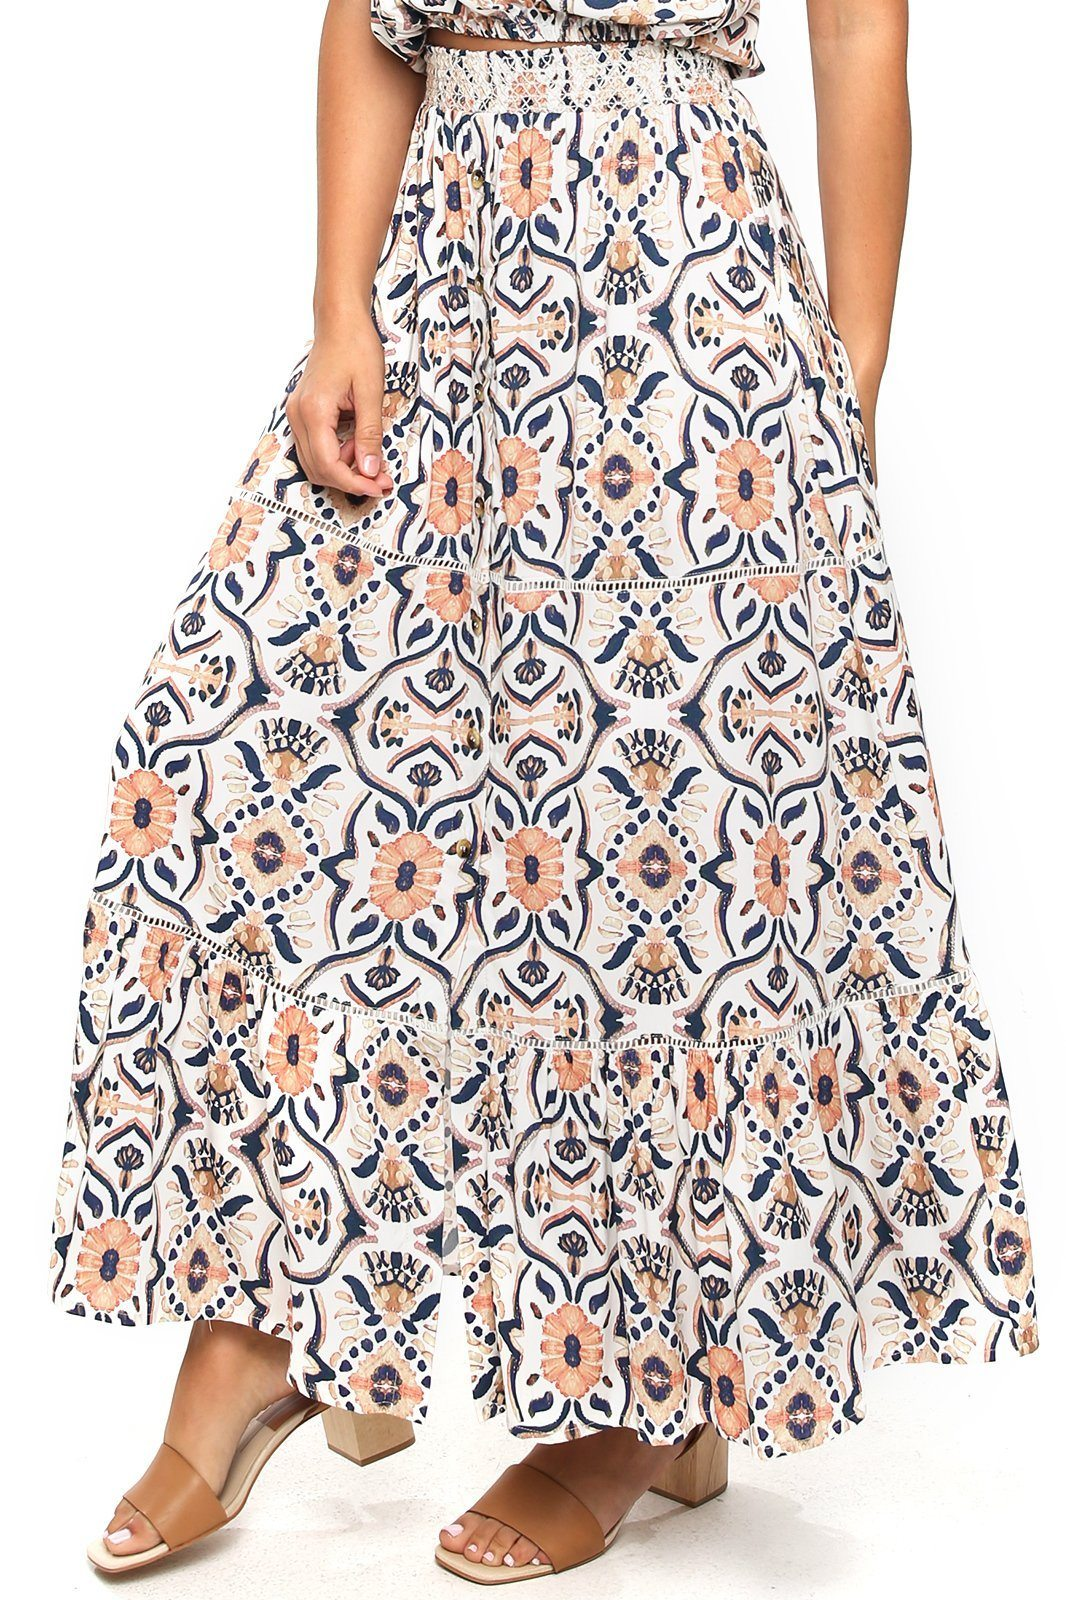 Opal Smocking Maxi Skirt - Moroccan Sunset - Shore